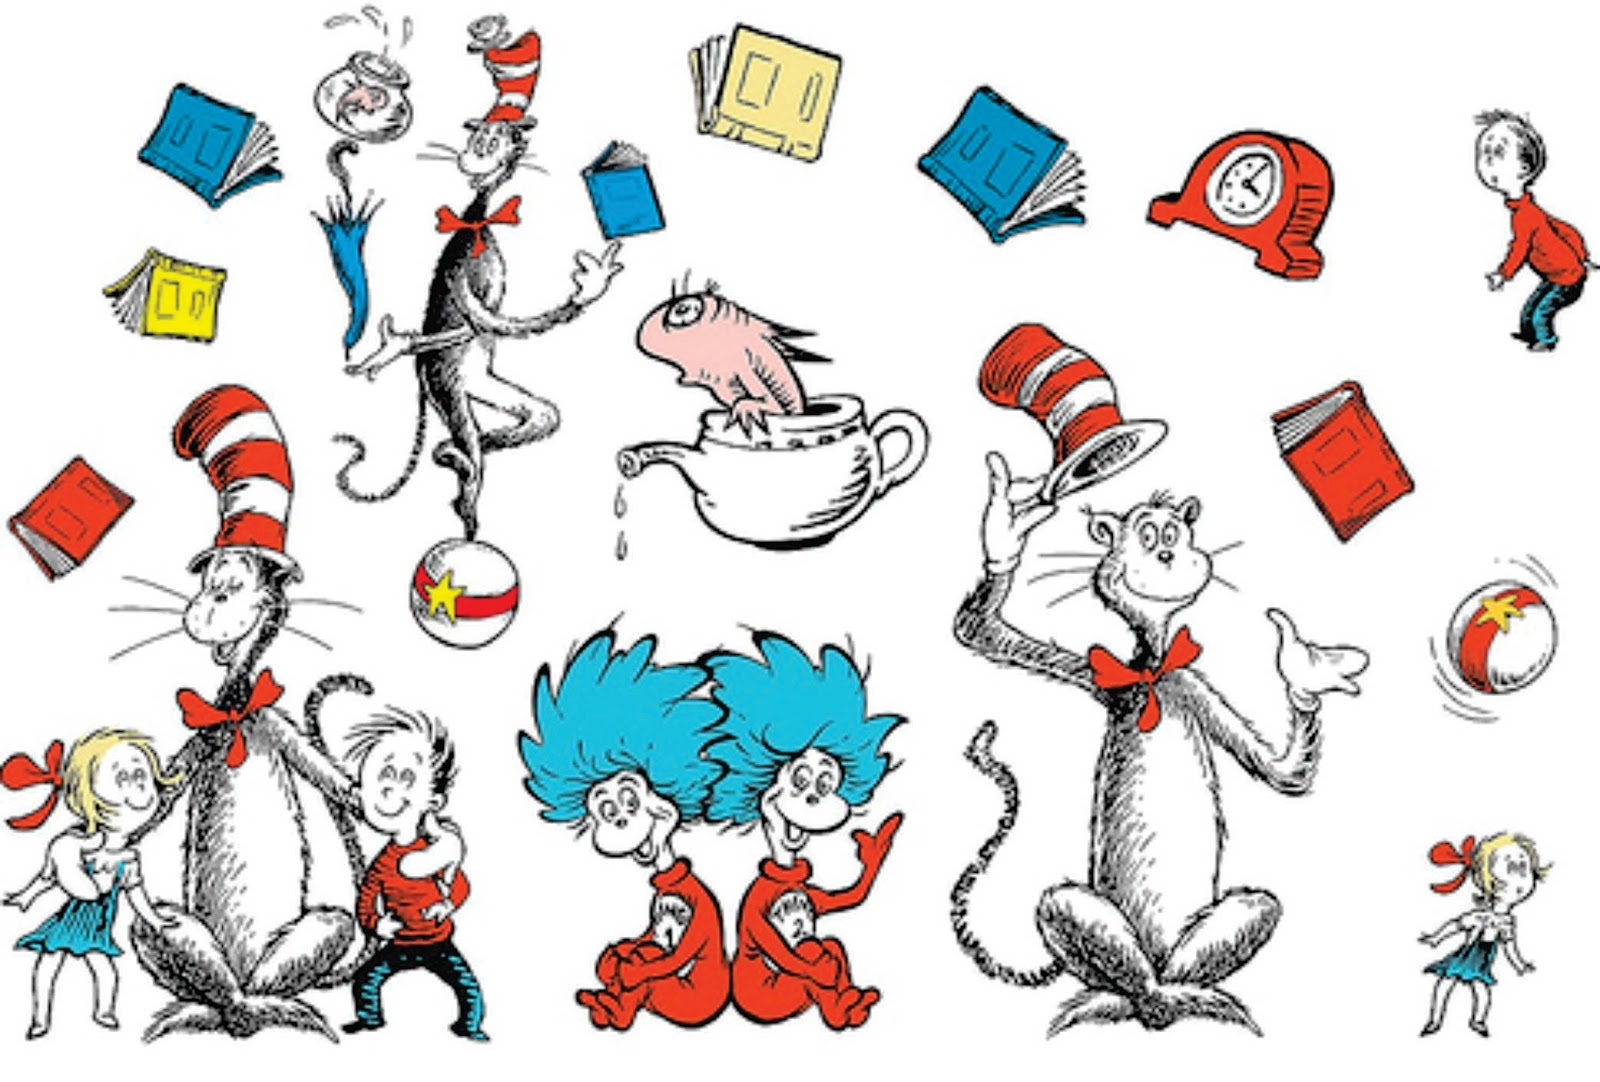 the artistic side of ted geisel from the cat in the hat by dr seuss